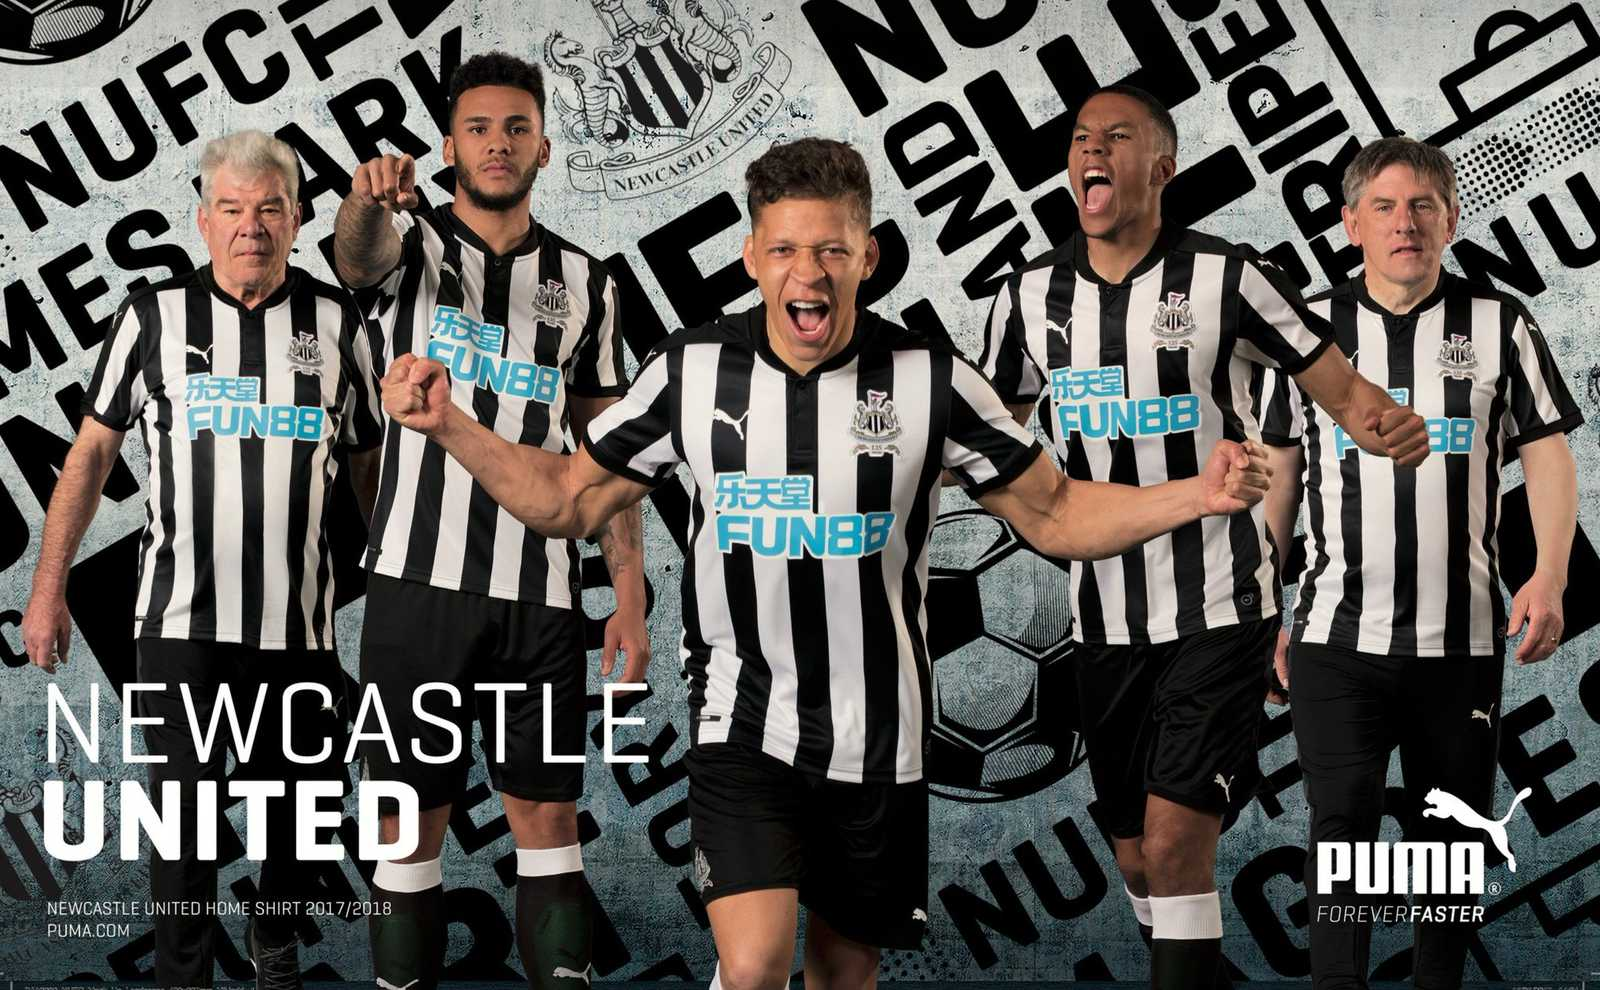 latest news from newcastle united